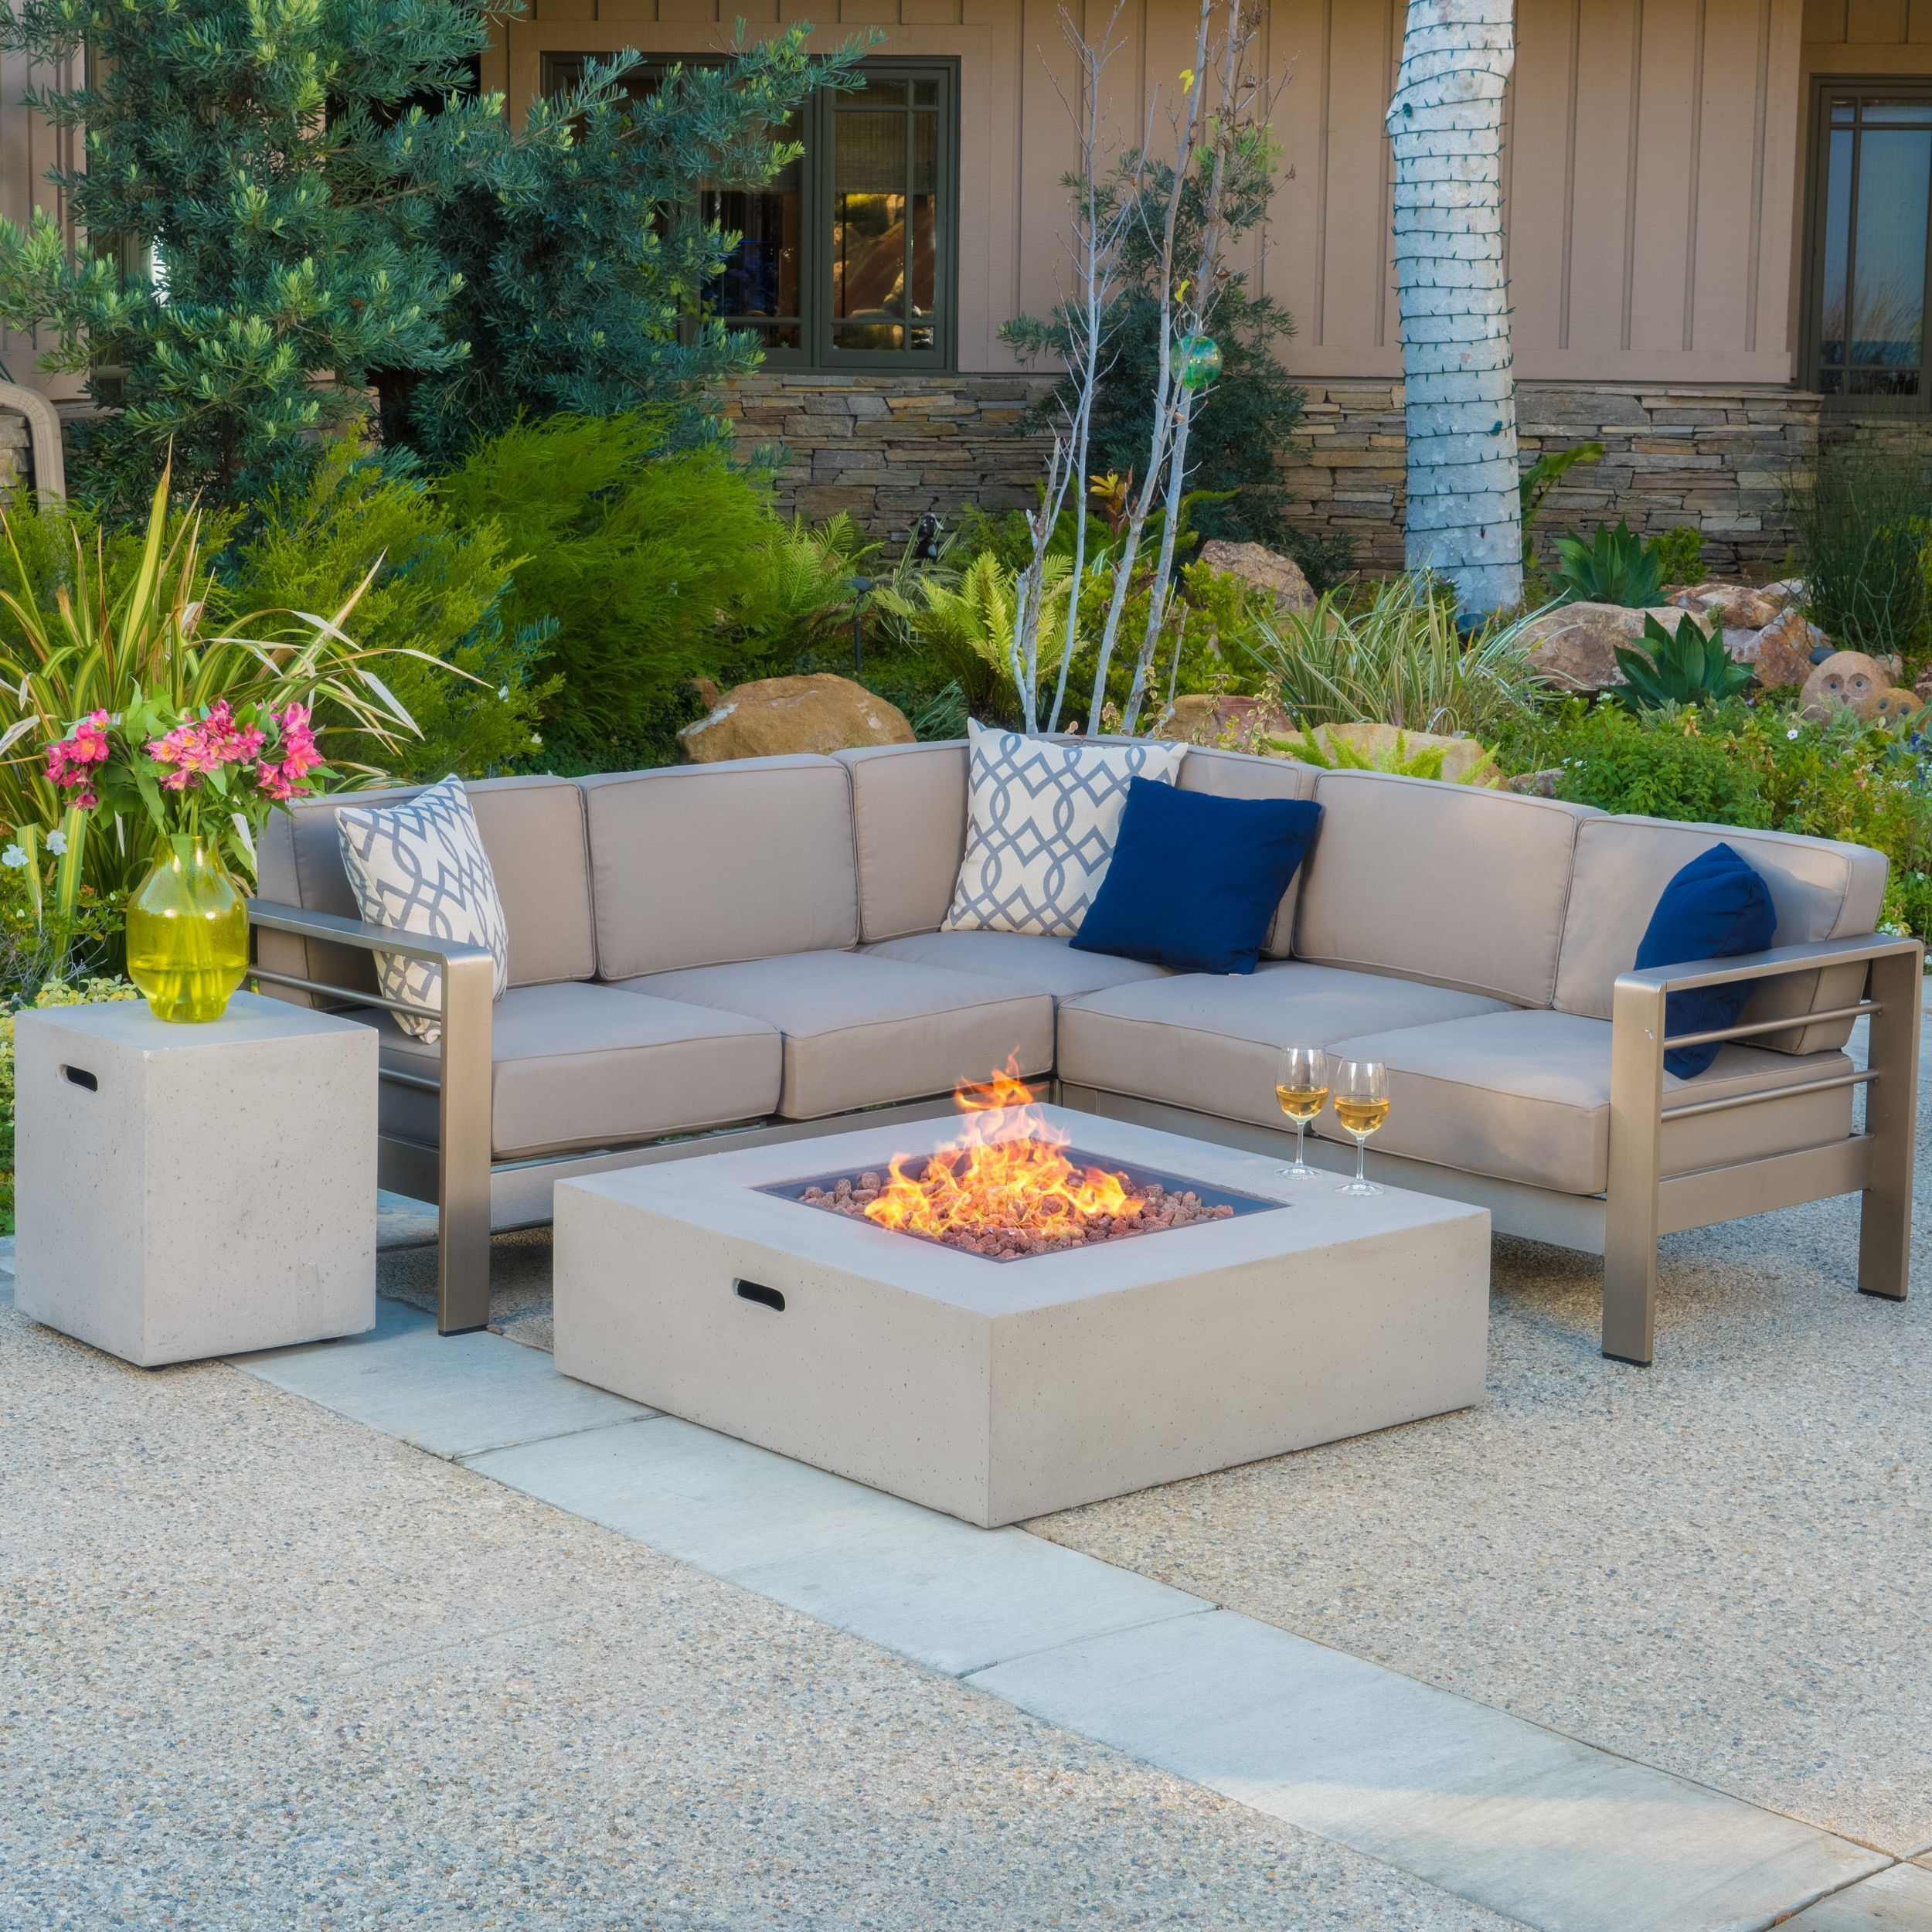 Awesome Christopher Knight Home Cape Coral Outdoor V Shaped Sofa Set With Fire Table  (Grey Fire Table), Size Sets, Patio Furniture (Aluminum)